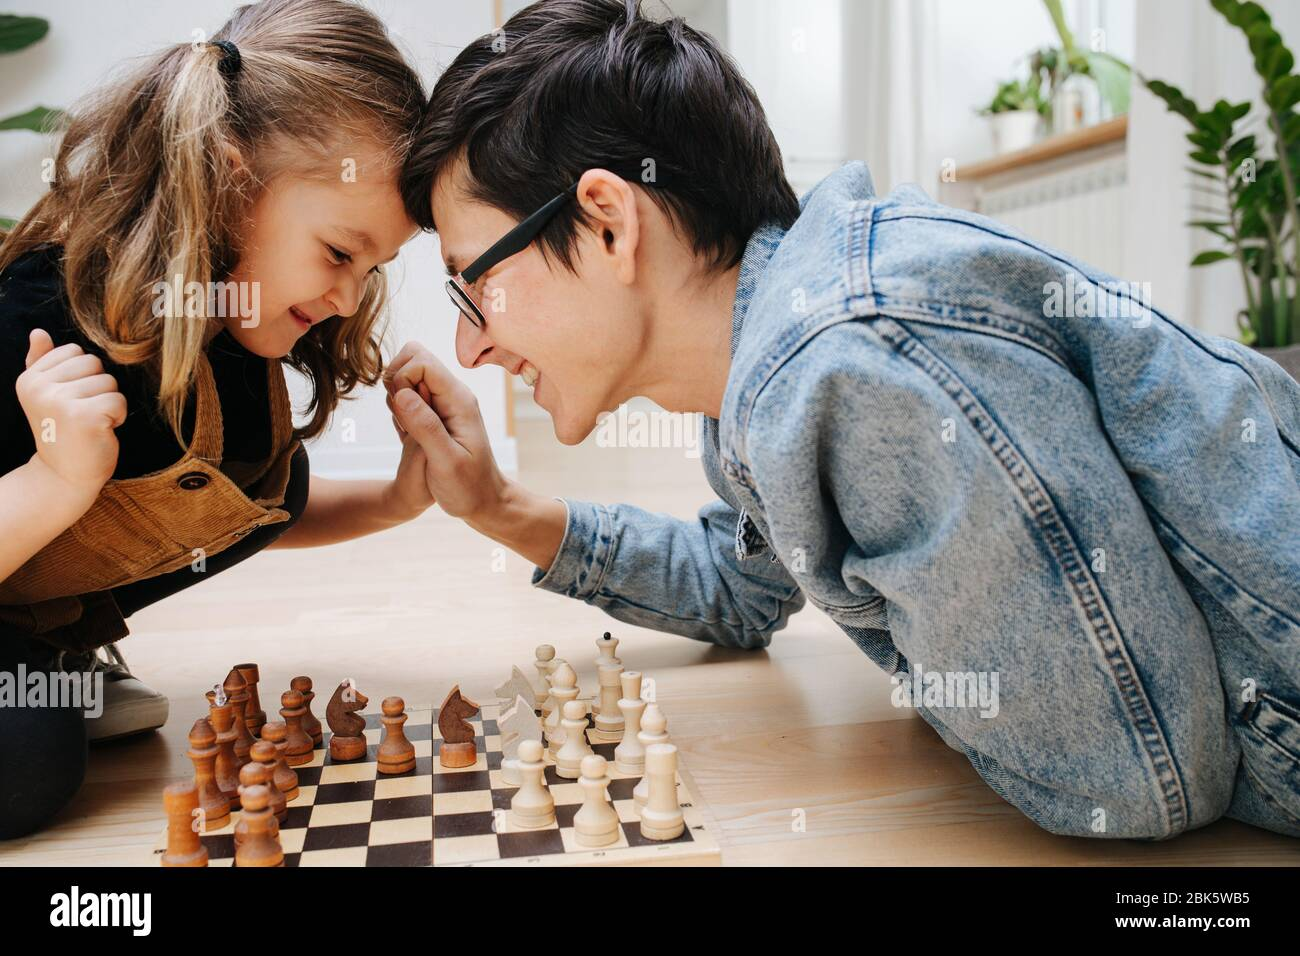 Friendly competition concept. dad and dau playing chess and batting heads Stock Photo